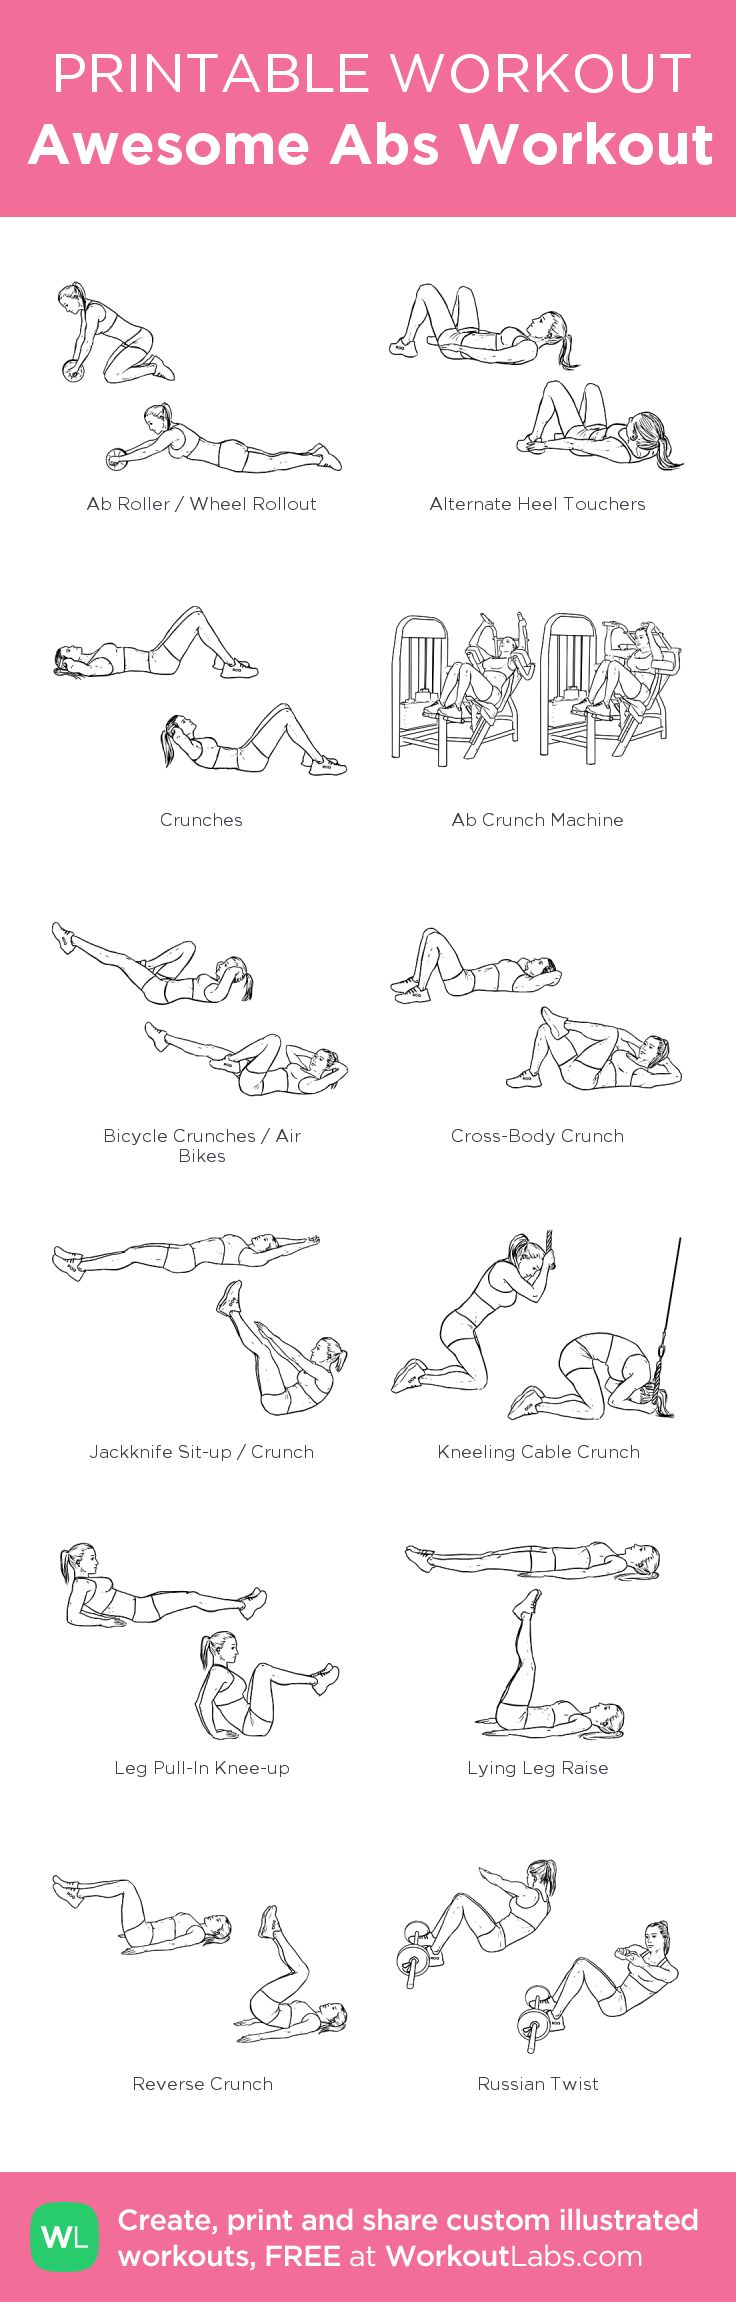 Awesome Abs Workout: my custom printable workout by @WorkoutLabs #workoutlabs #customworkout